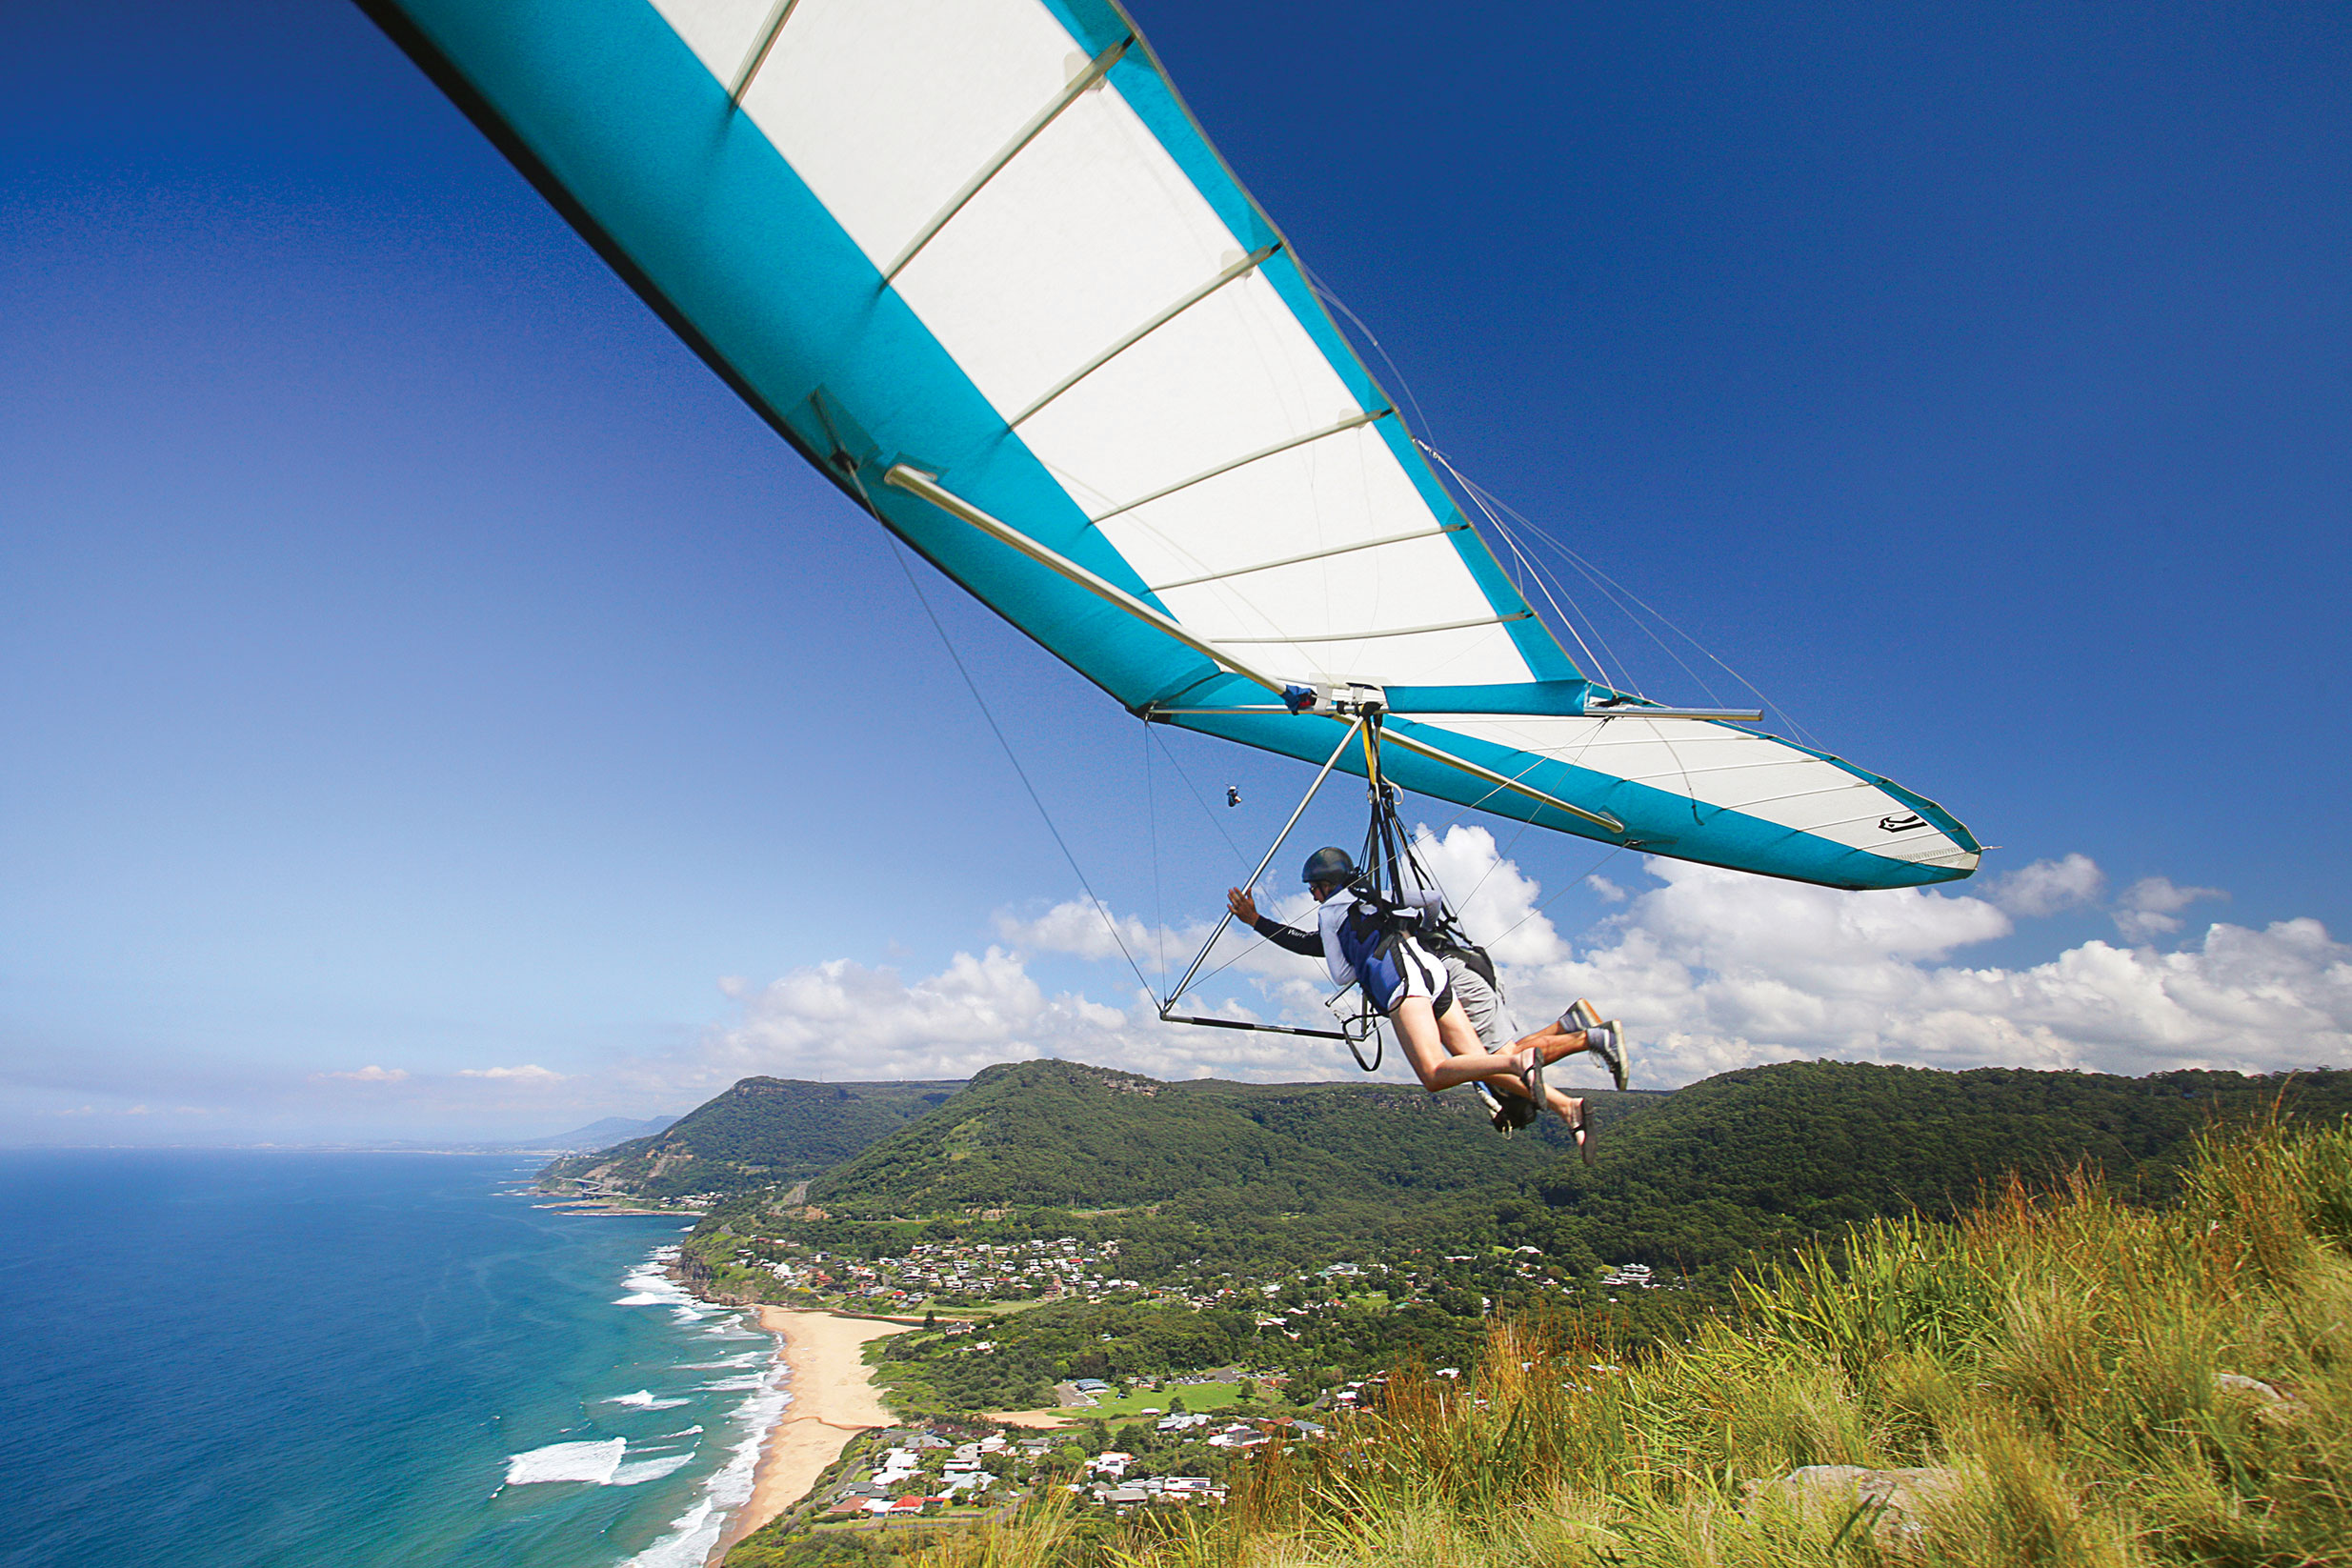 Hang gliding over Stanwell Tops